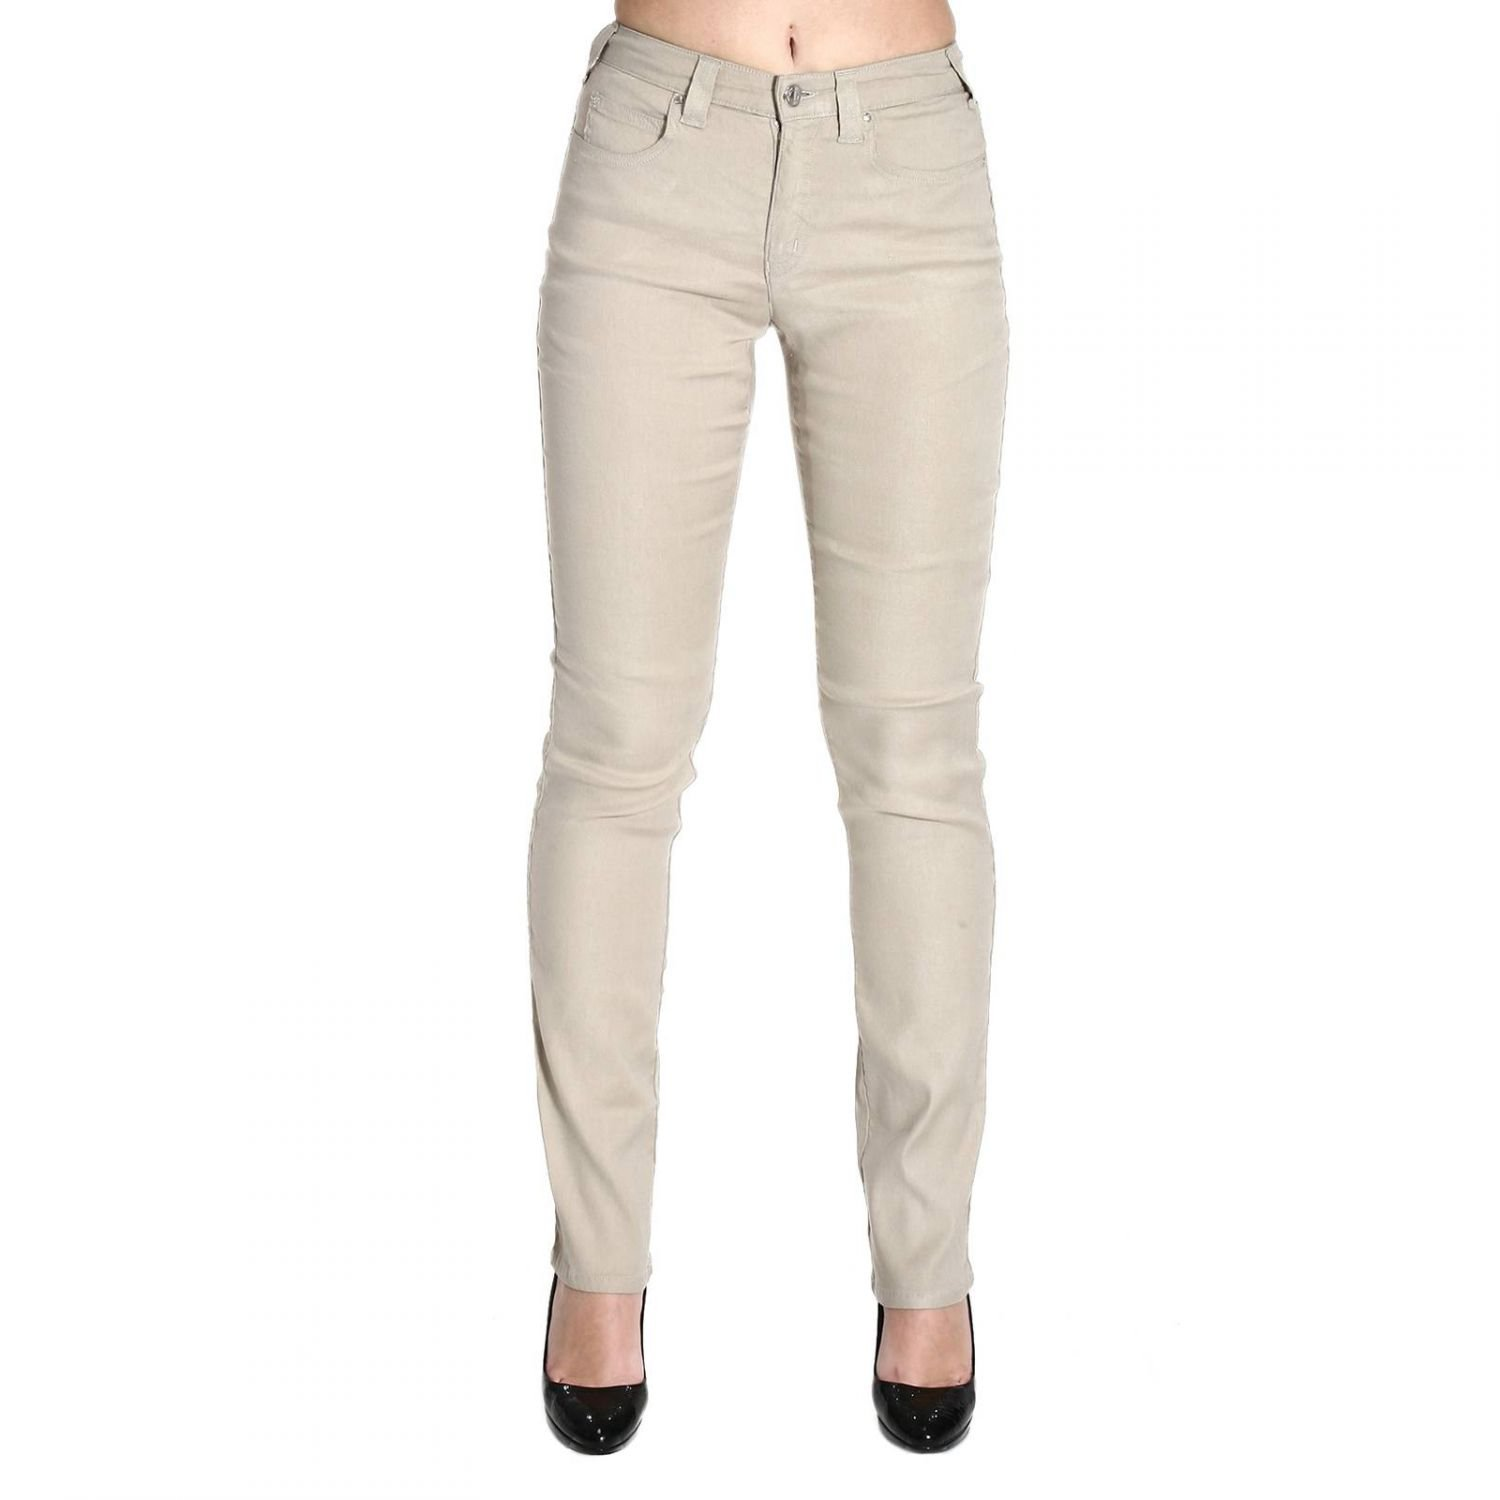 Fantastic Light Beige Olive Super Skinny Jeans  Jeans  Sale  Women